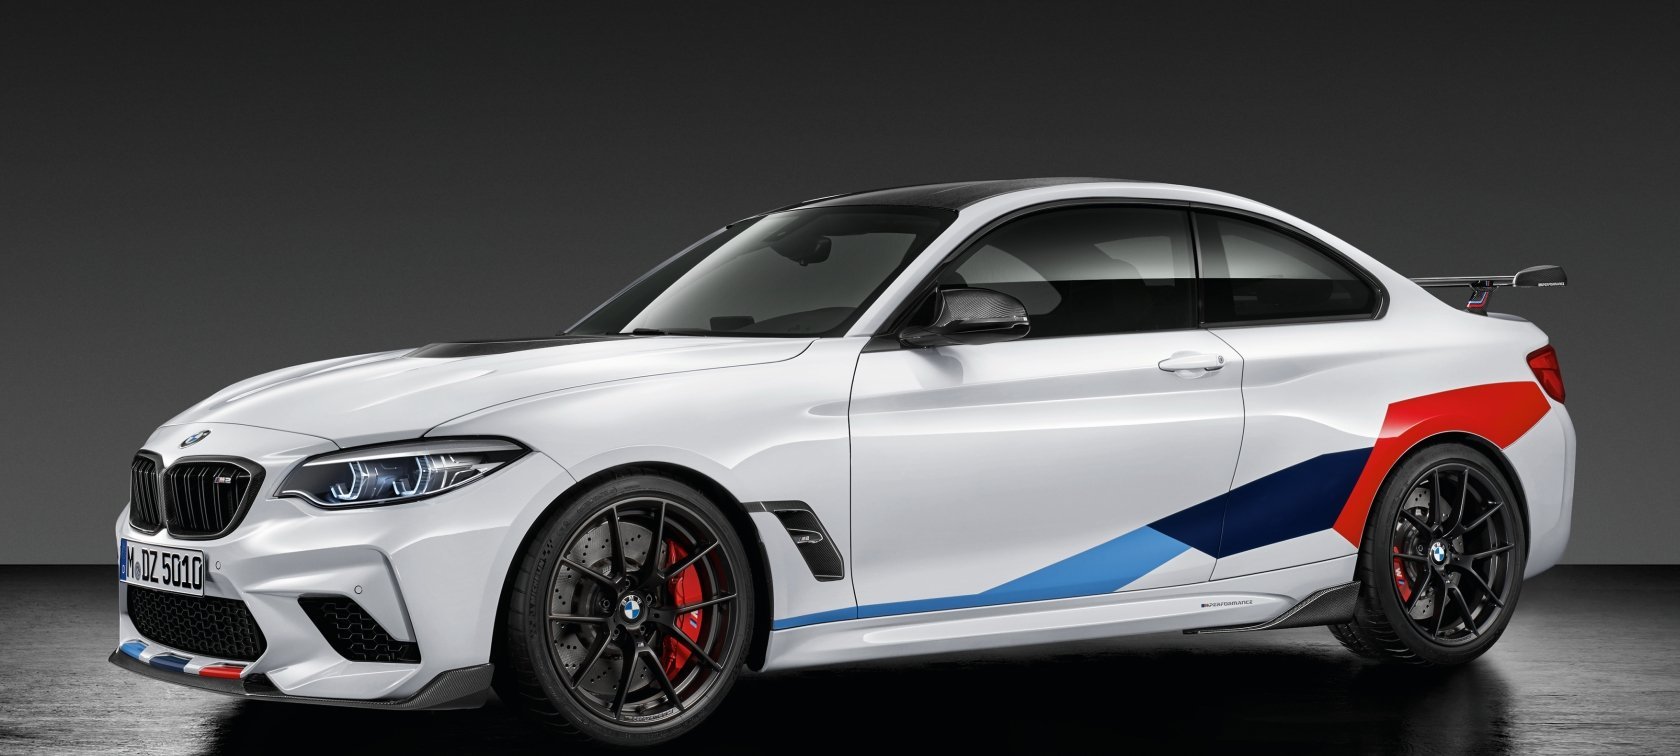 The Bmw M2 Competition With Bmw M Performance Parts